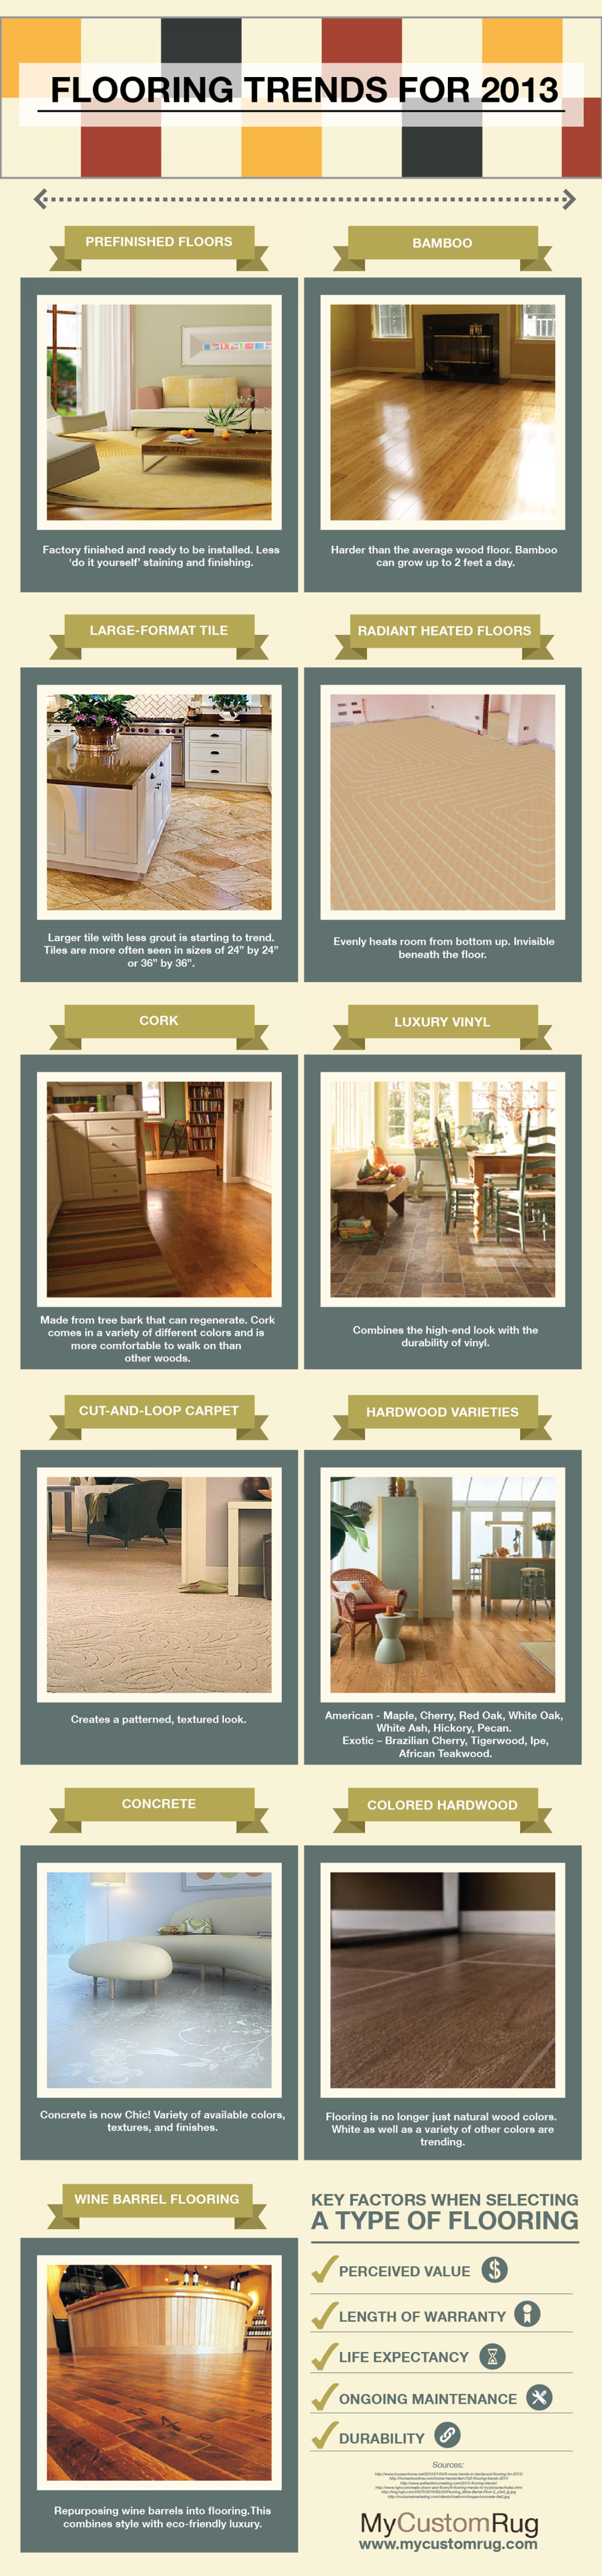 Flooring Trends For 2013 Infographic